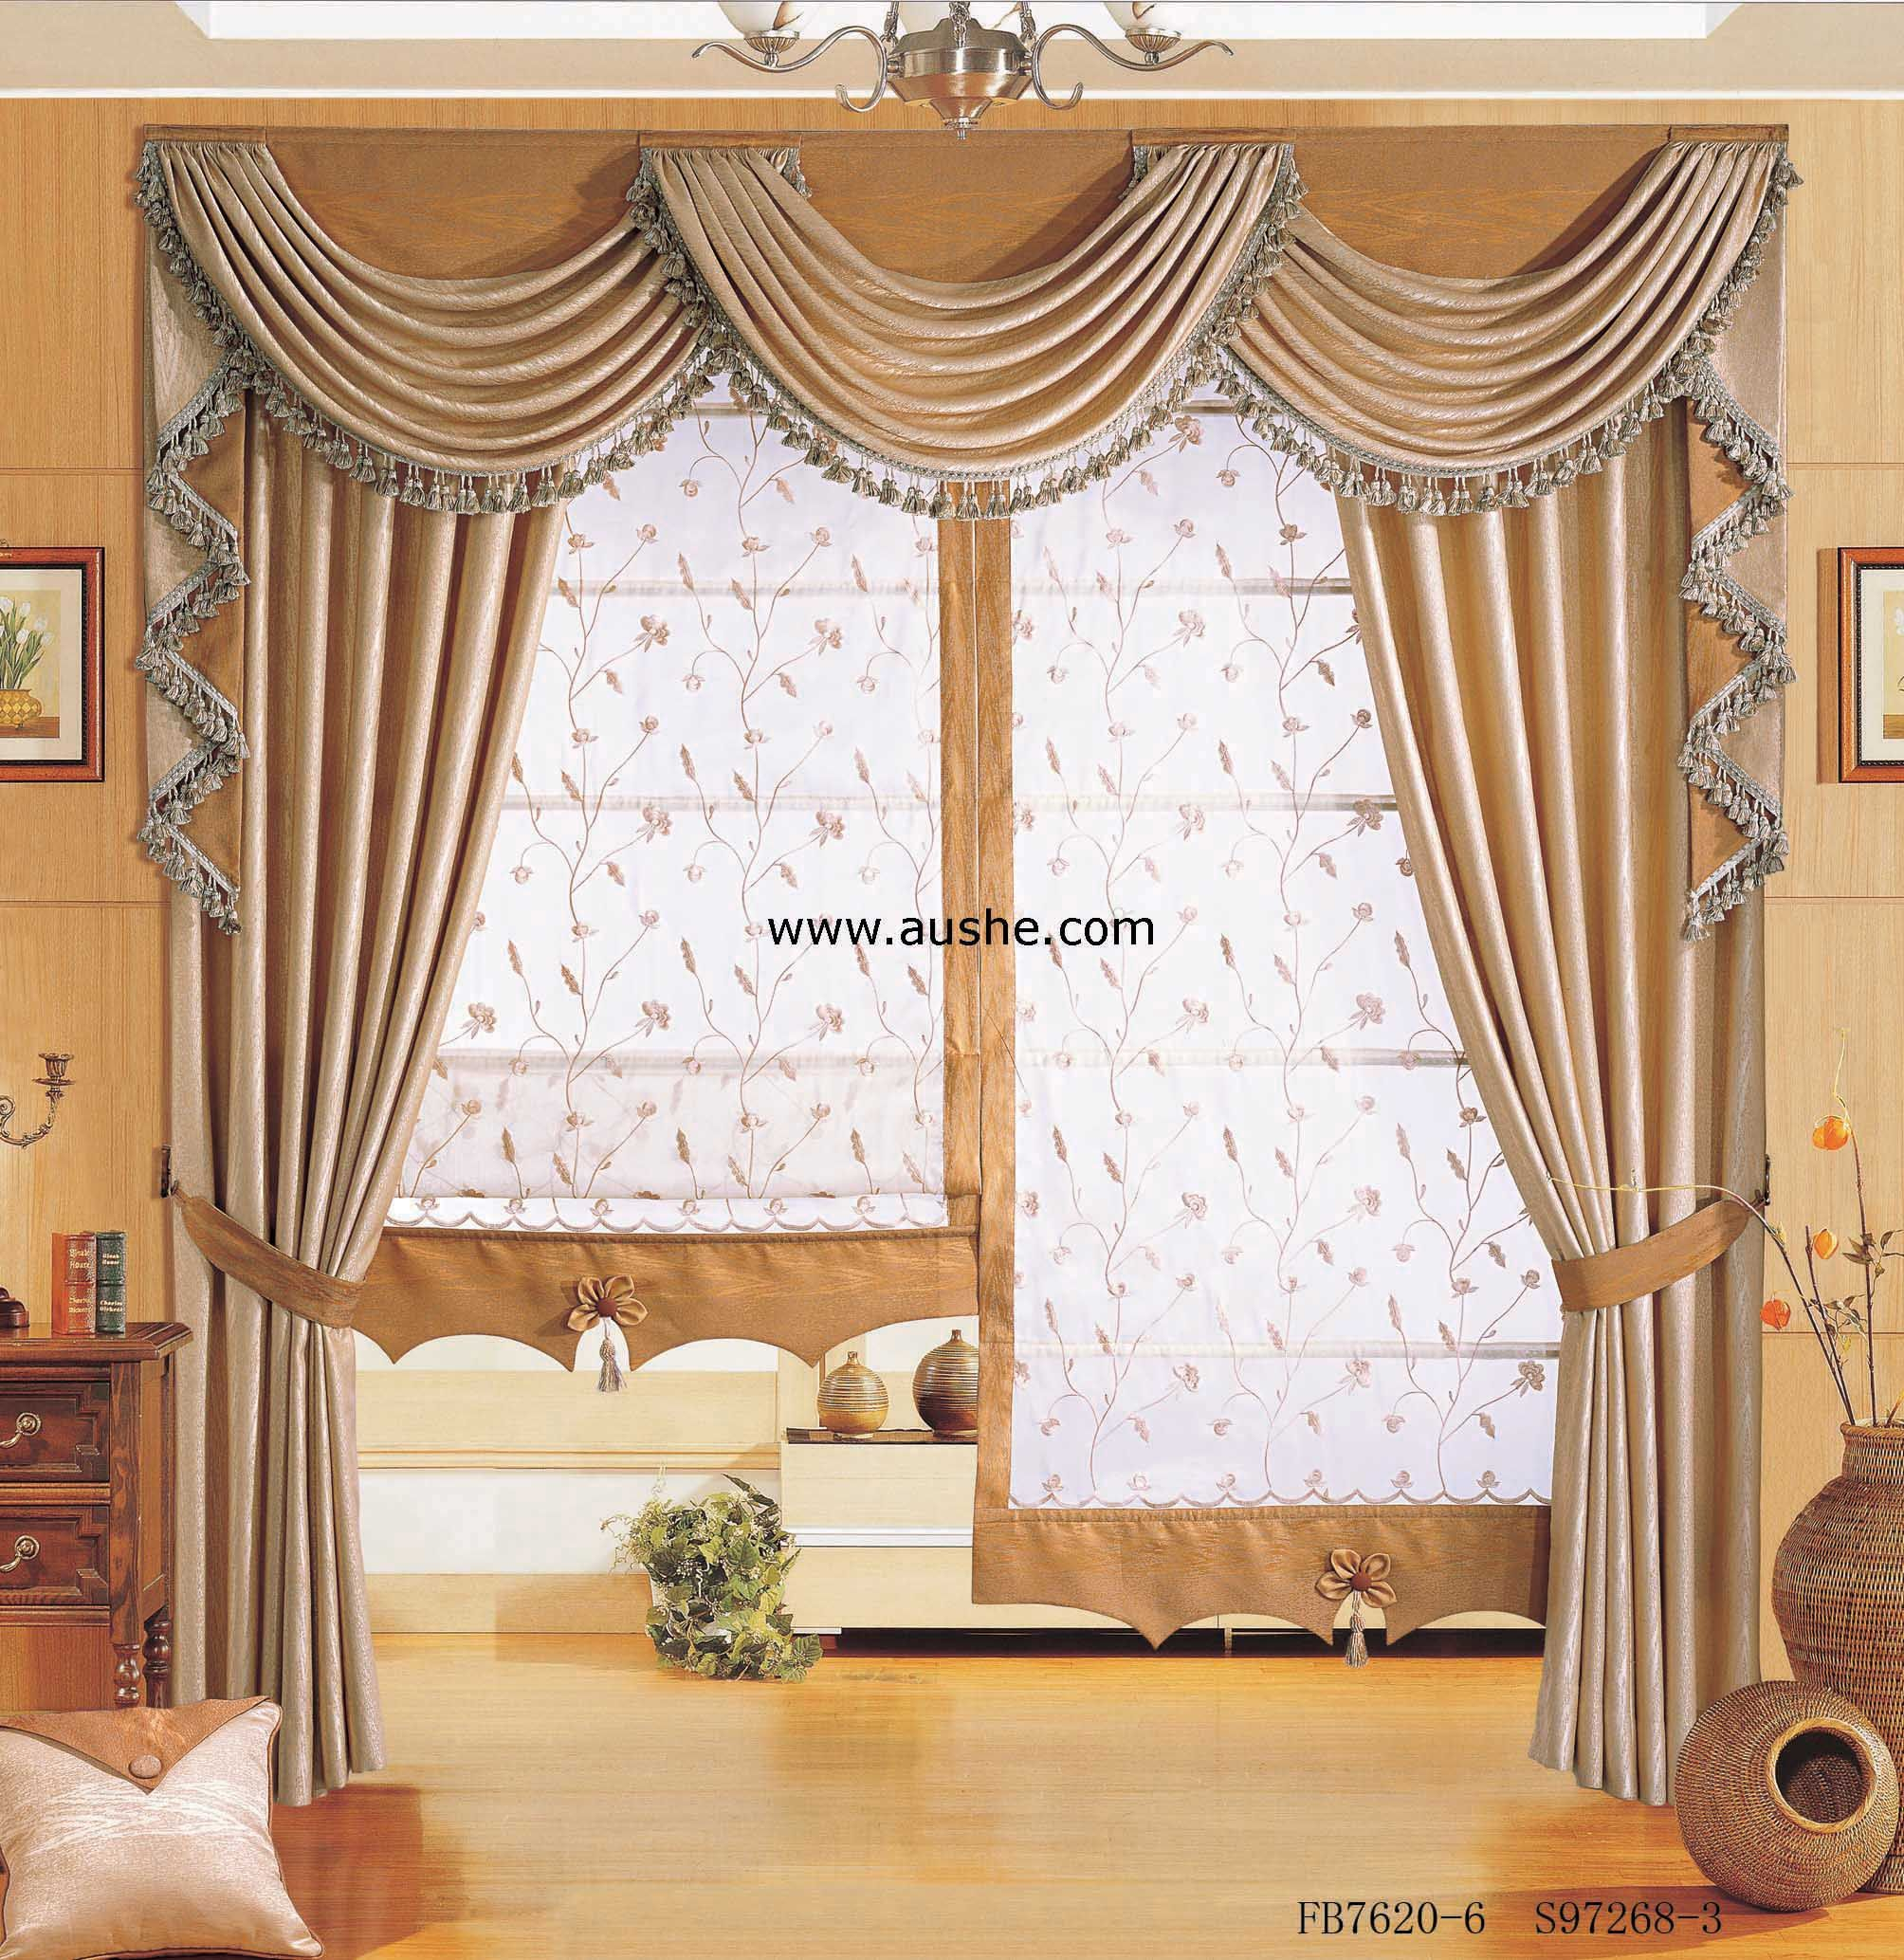 Curtain valances google search elegant drapery Window curtains design ideas